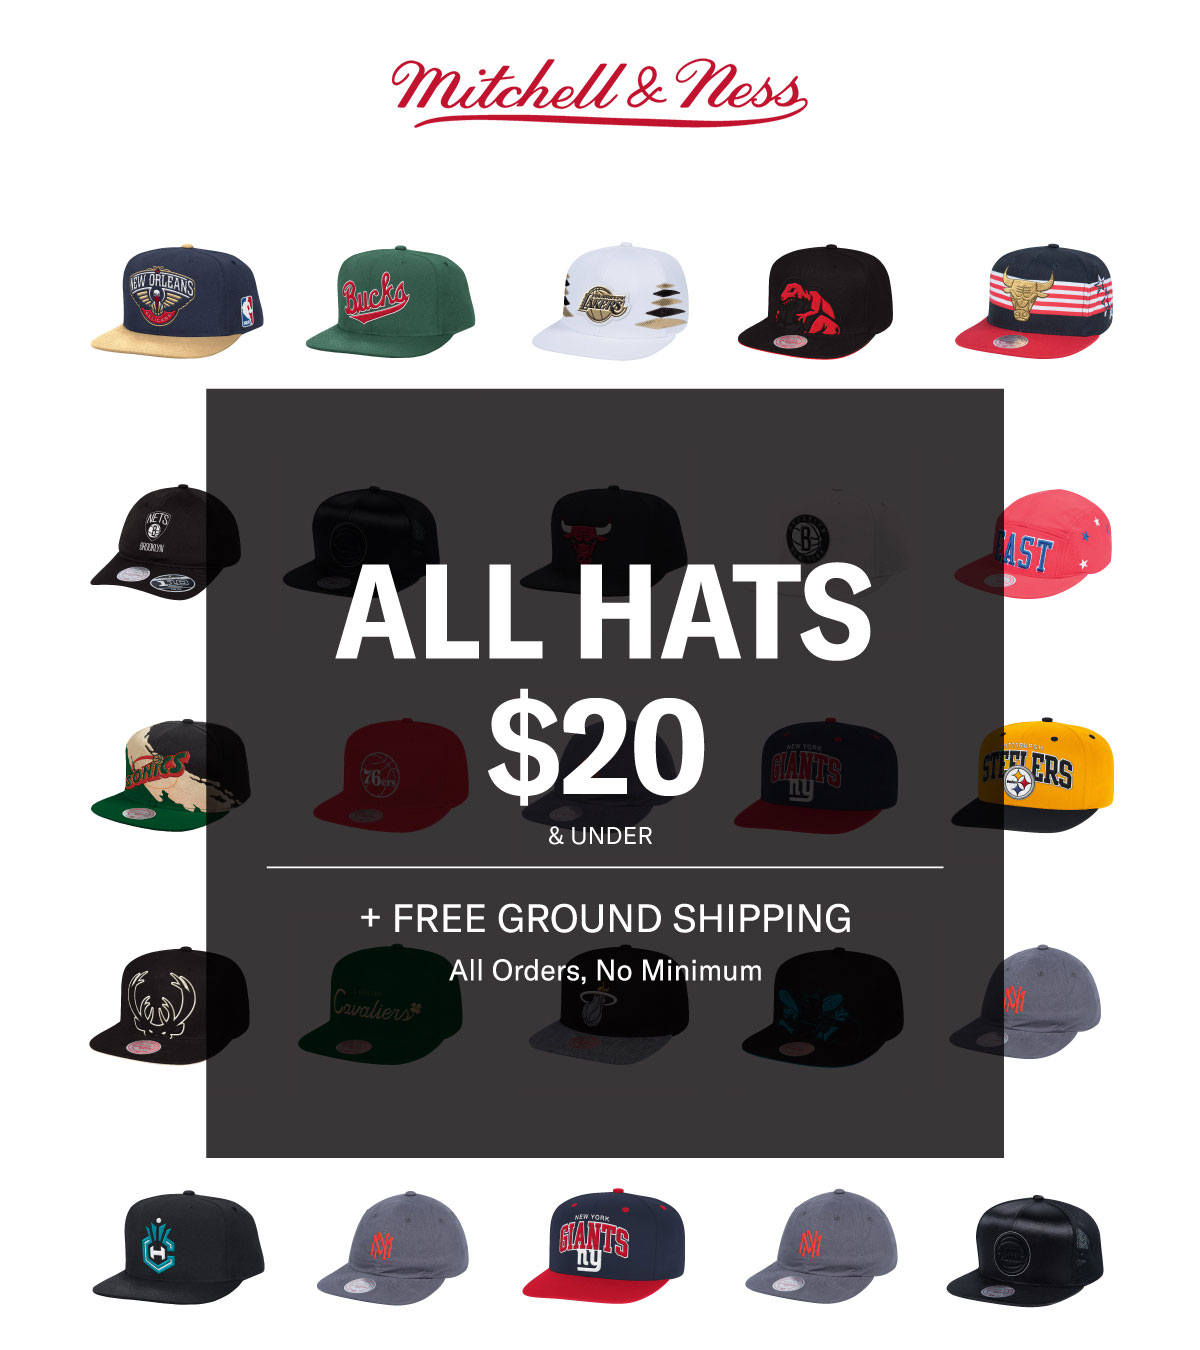 All Hats $20 and Under